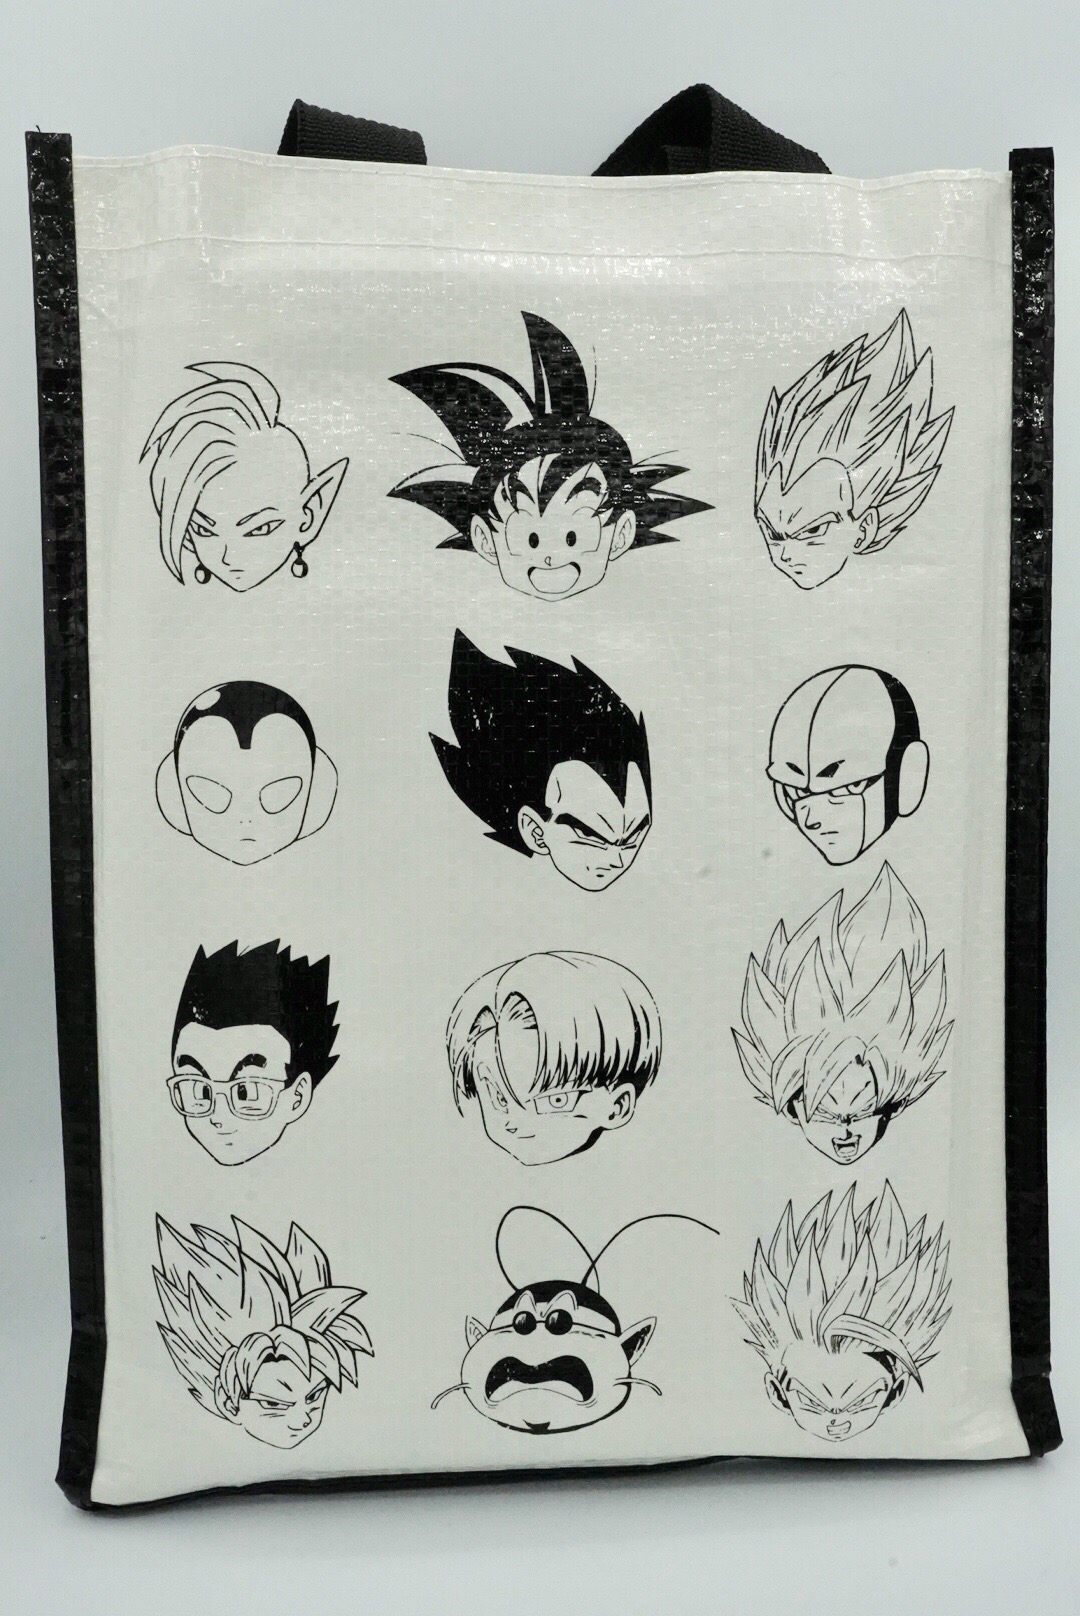 Dragon ball son goku bw 120 x 90